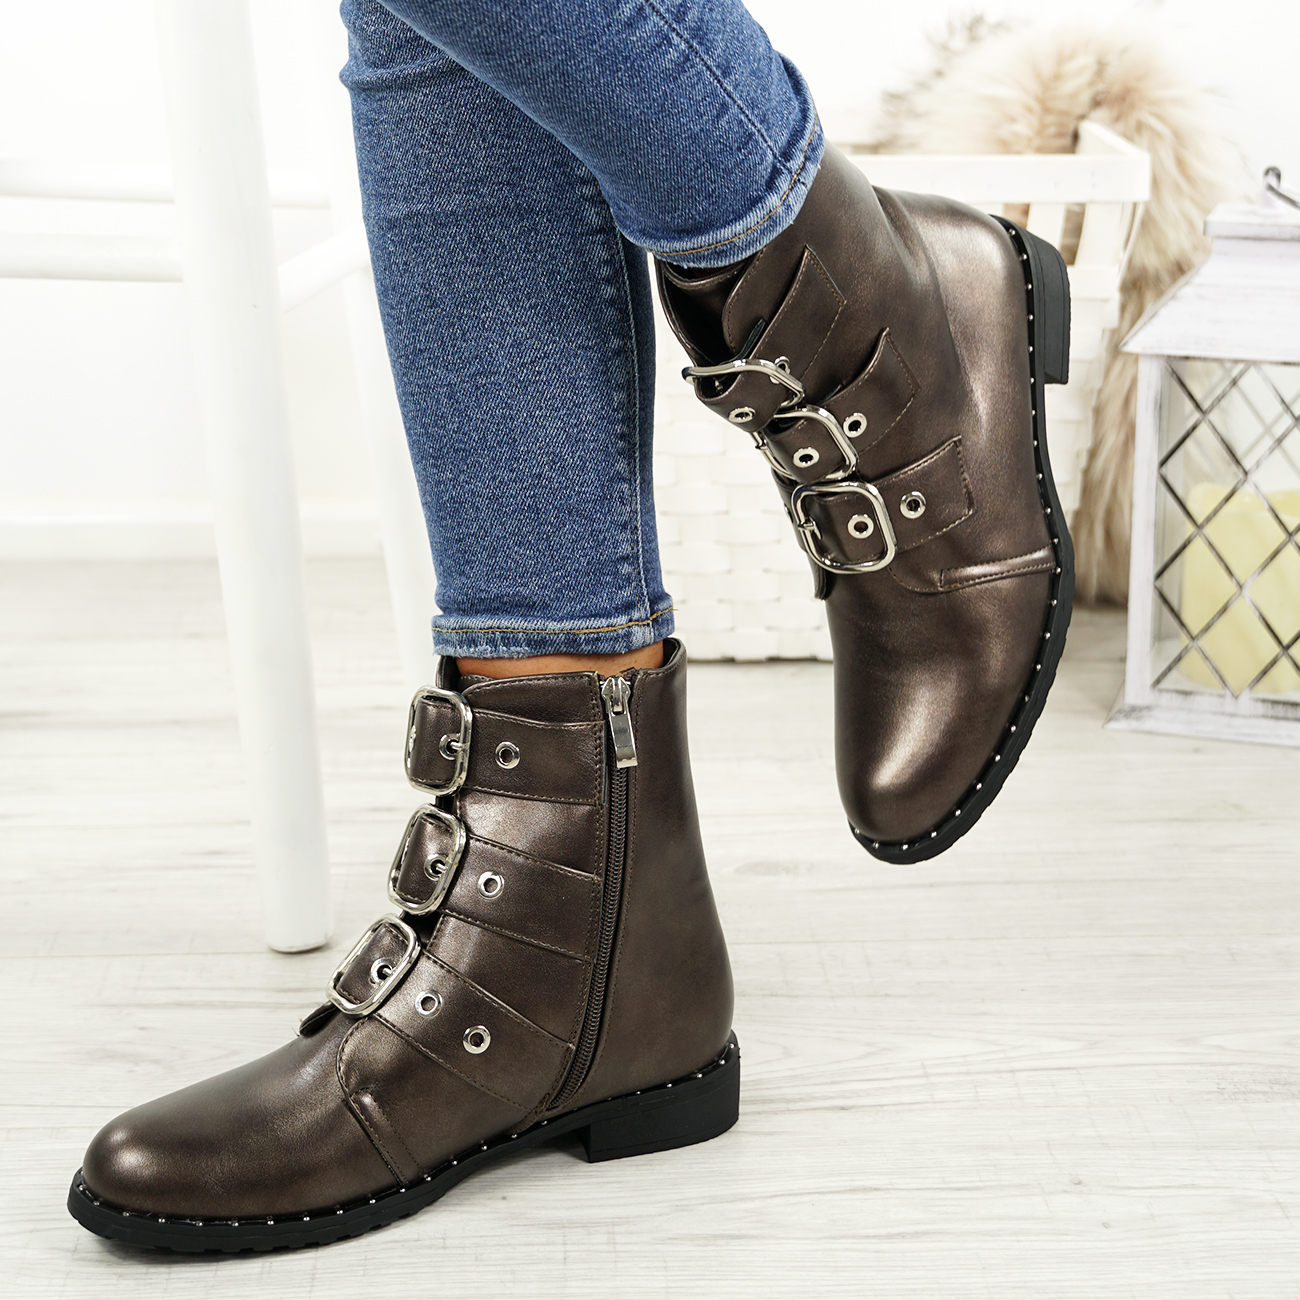 LADIES-WOMENS-BIKER-ANKLE-BOOTS-ZIP-STUDDED-LOW-HEEL-COMFY-SHOES-SIZES thumbnail 20